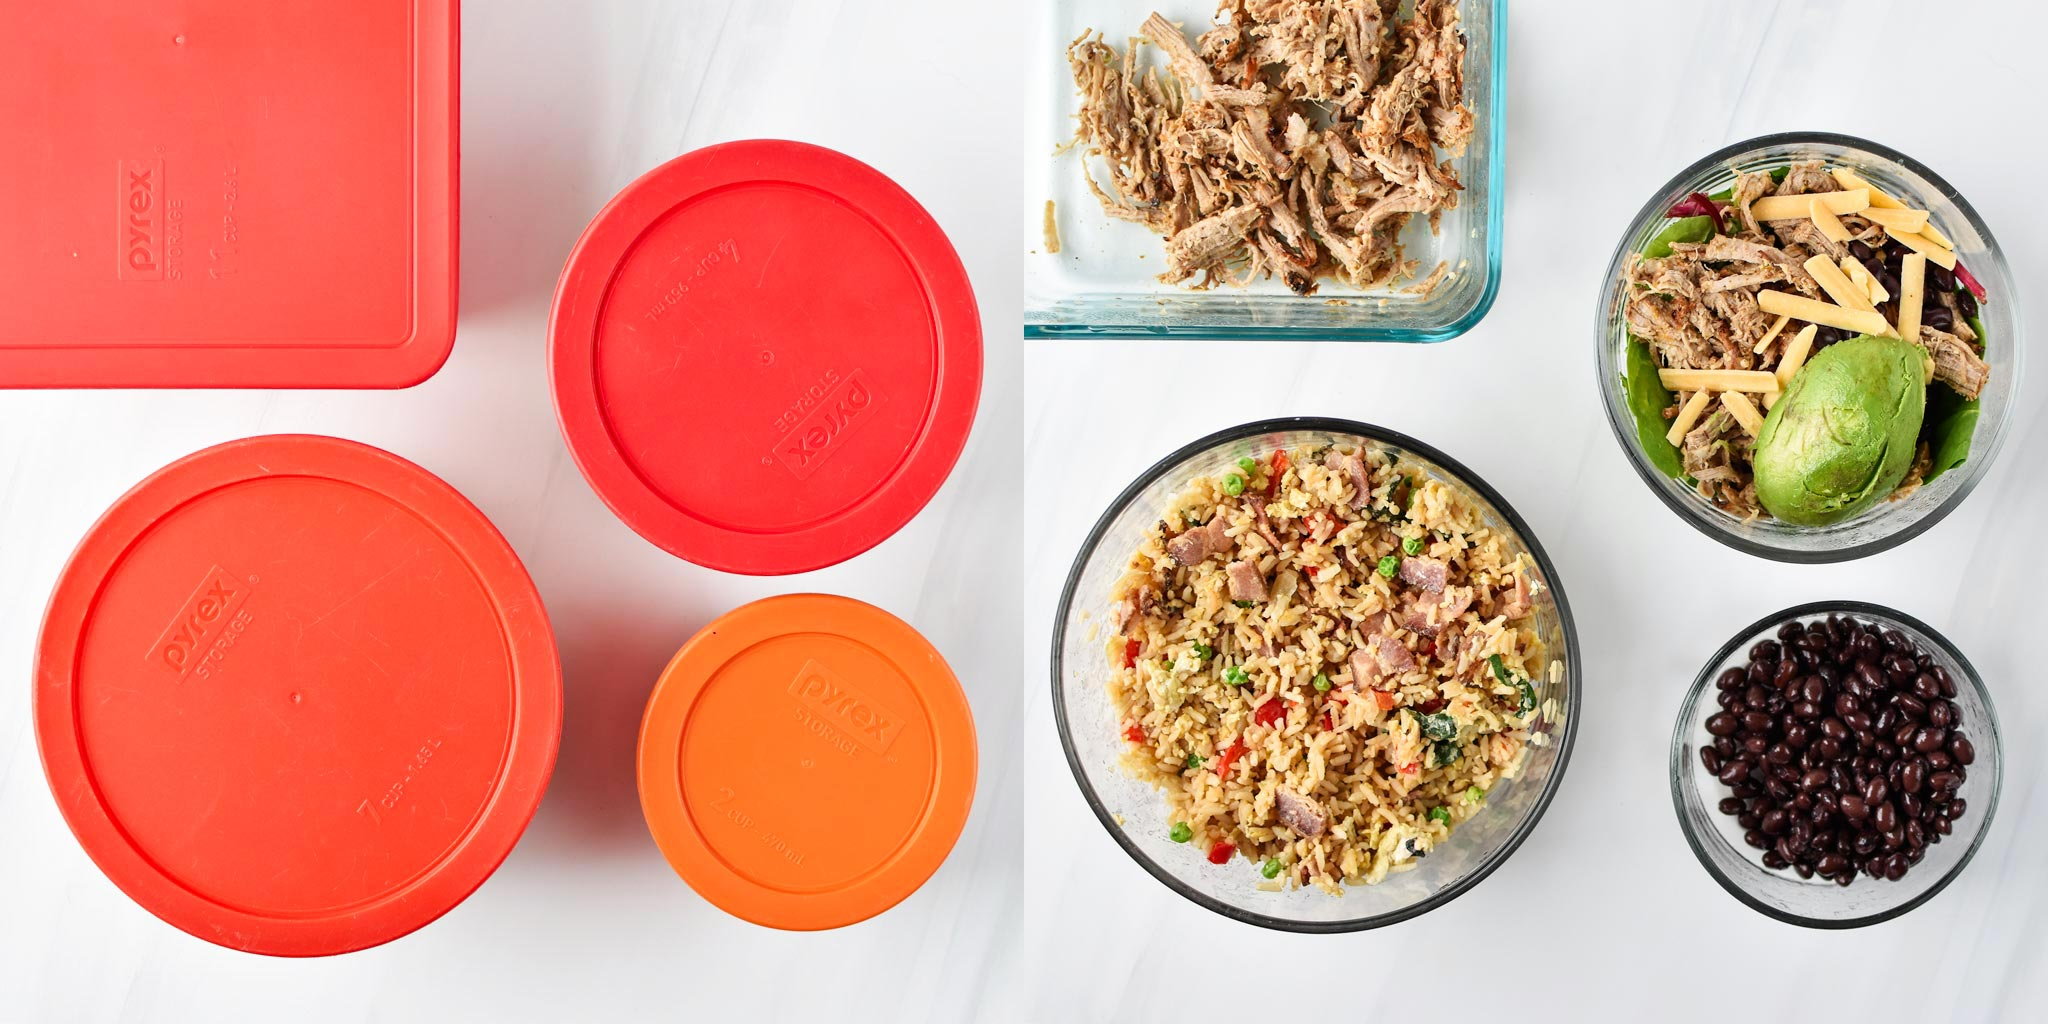 Various stored leftovers in Pyrex containers from my fridge, one side with lids on and one side with lids off.